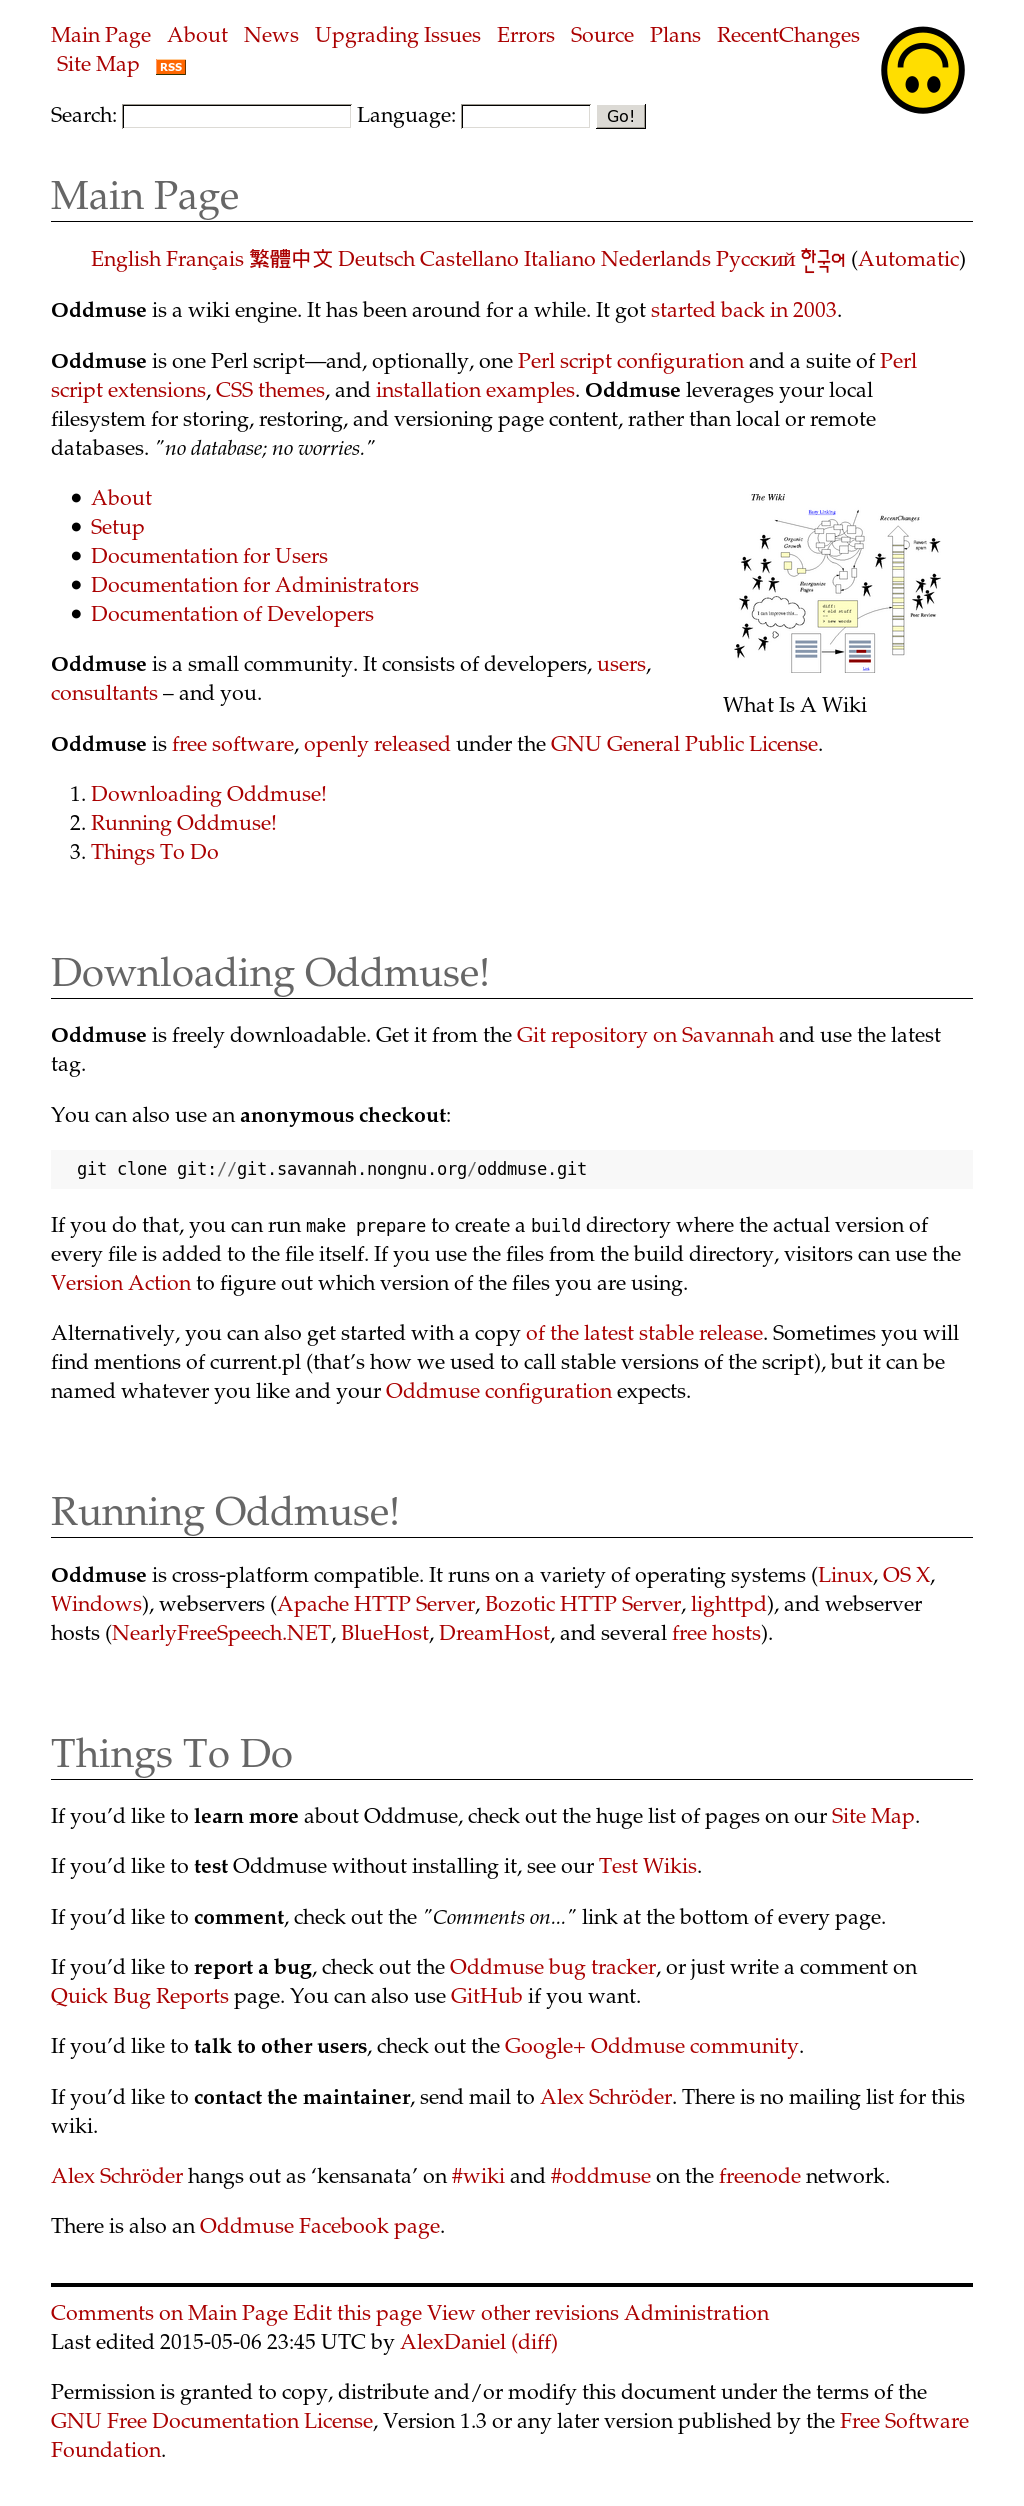 Oddmuse Competitors, Revenue and Employees - Owler Company Profile